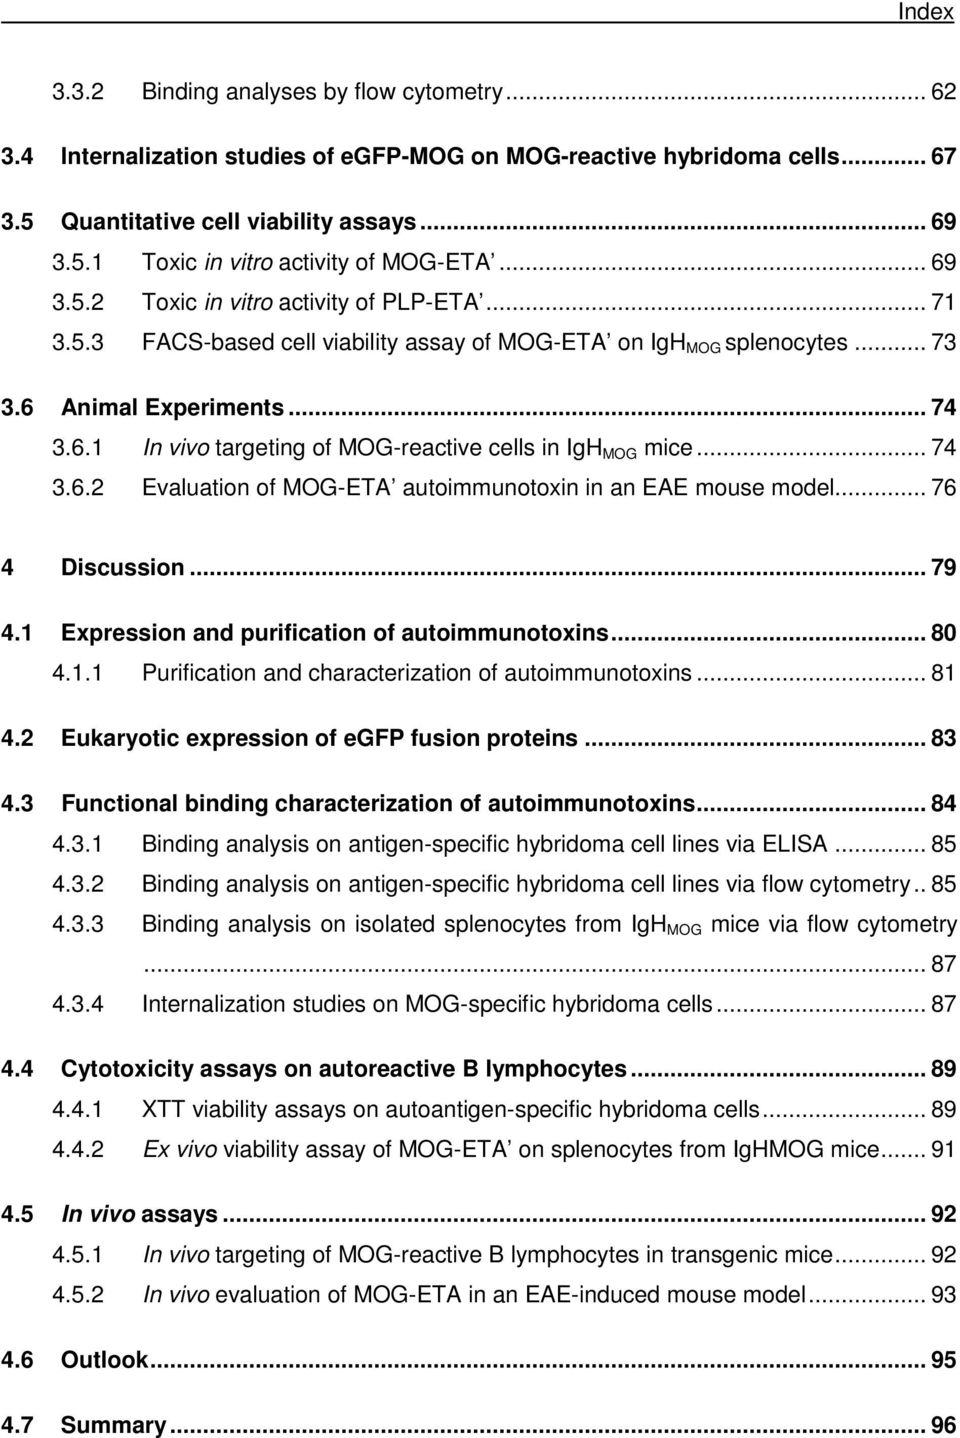 .. 74 3.6.2 Evaluation of MOG-ETA autoimmunotoxin in an EAE mouse model... 76 4 Discussion... 79 4.1 Expression and purification of autoimmunotoxins... 80 4.1.1 Purification and characterization of autoimmunotoxins.